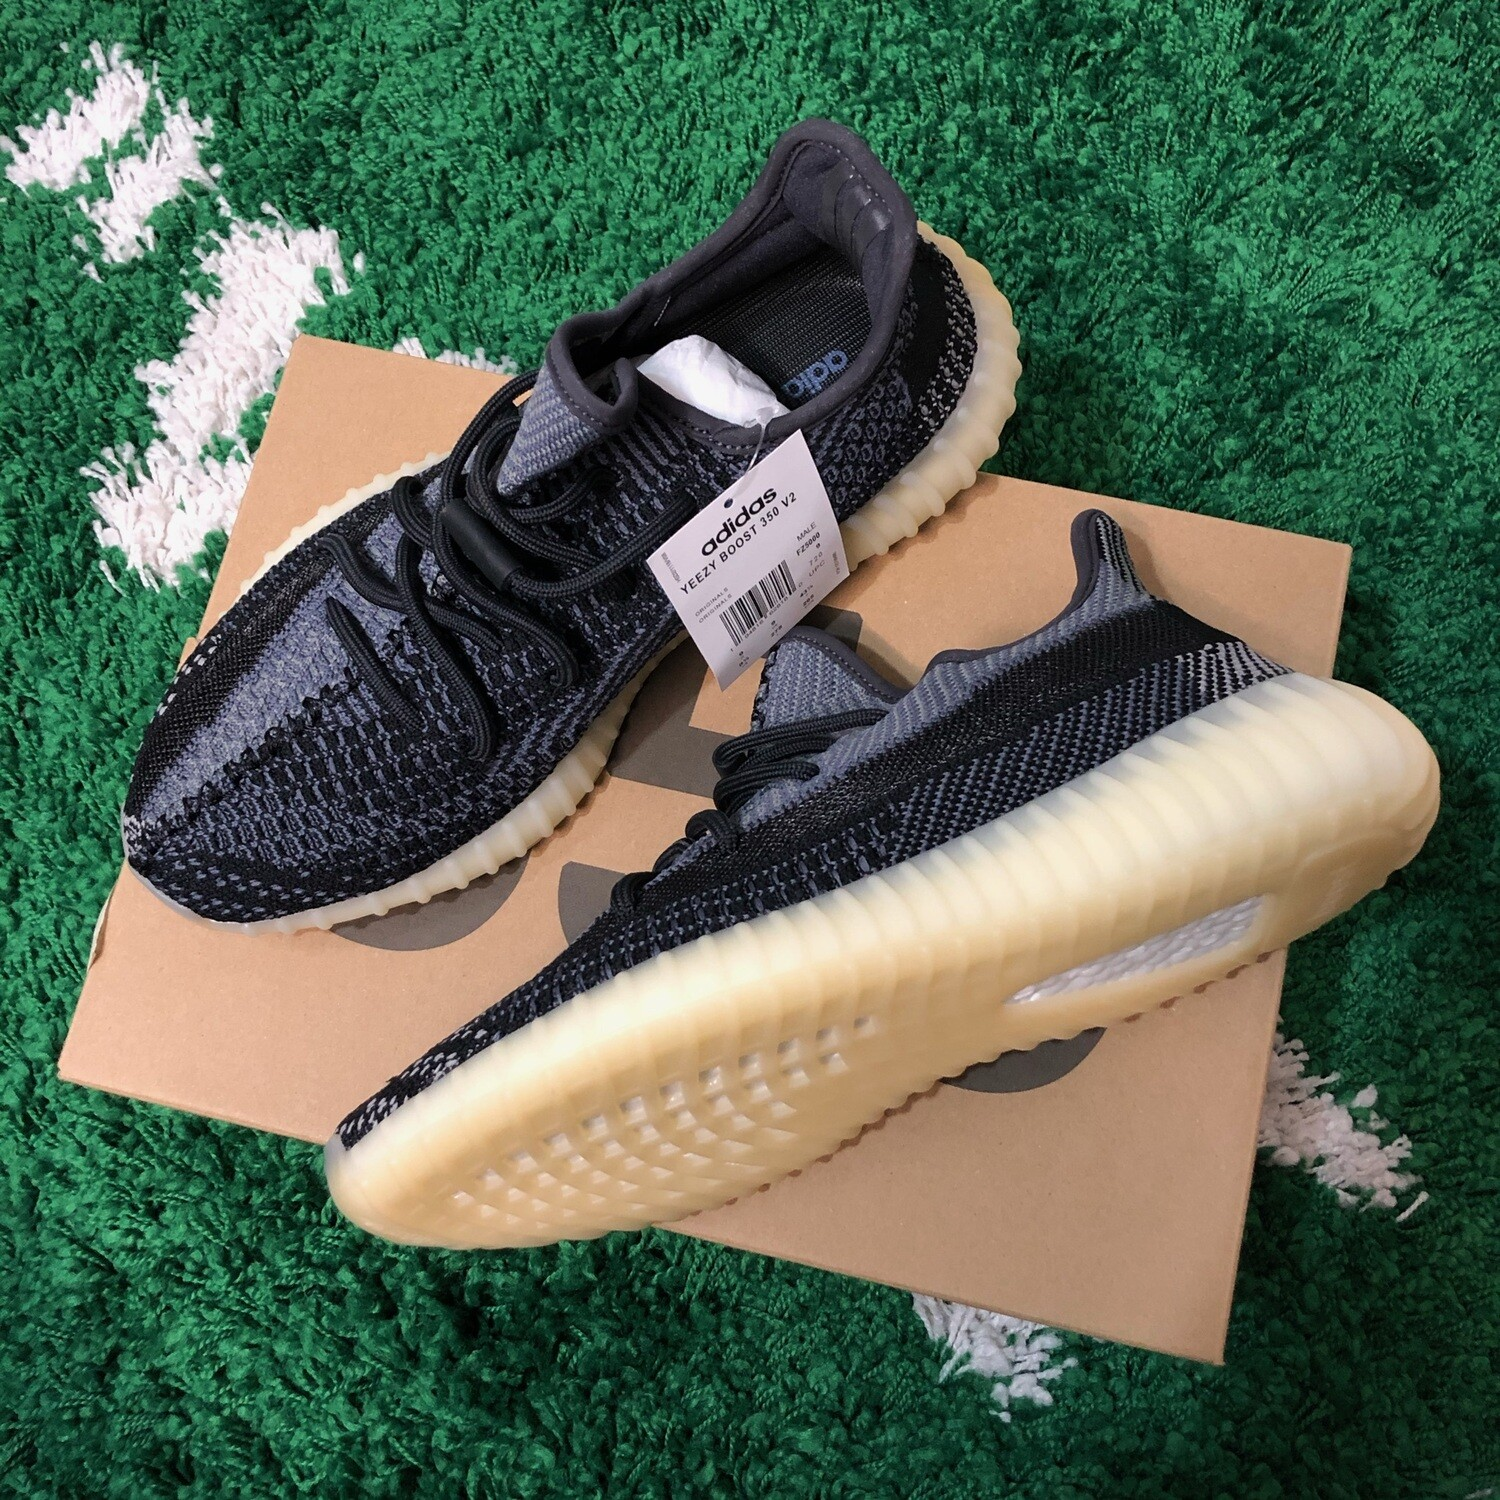 Adidas Yeezy Boost 350 V2 Carbon Size 7